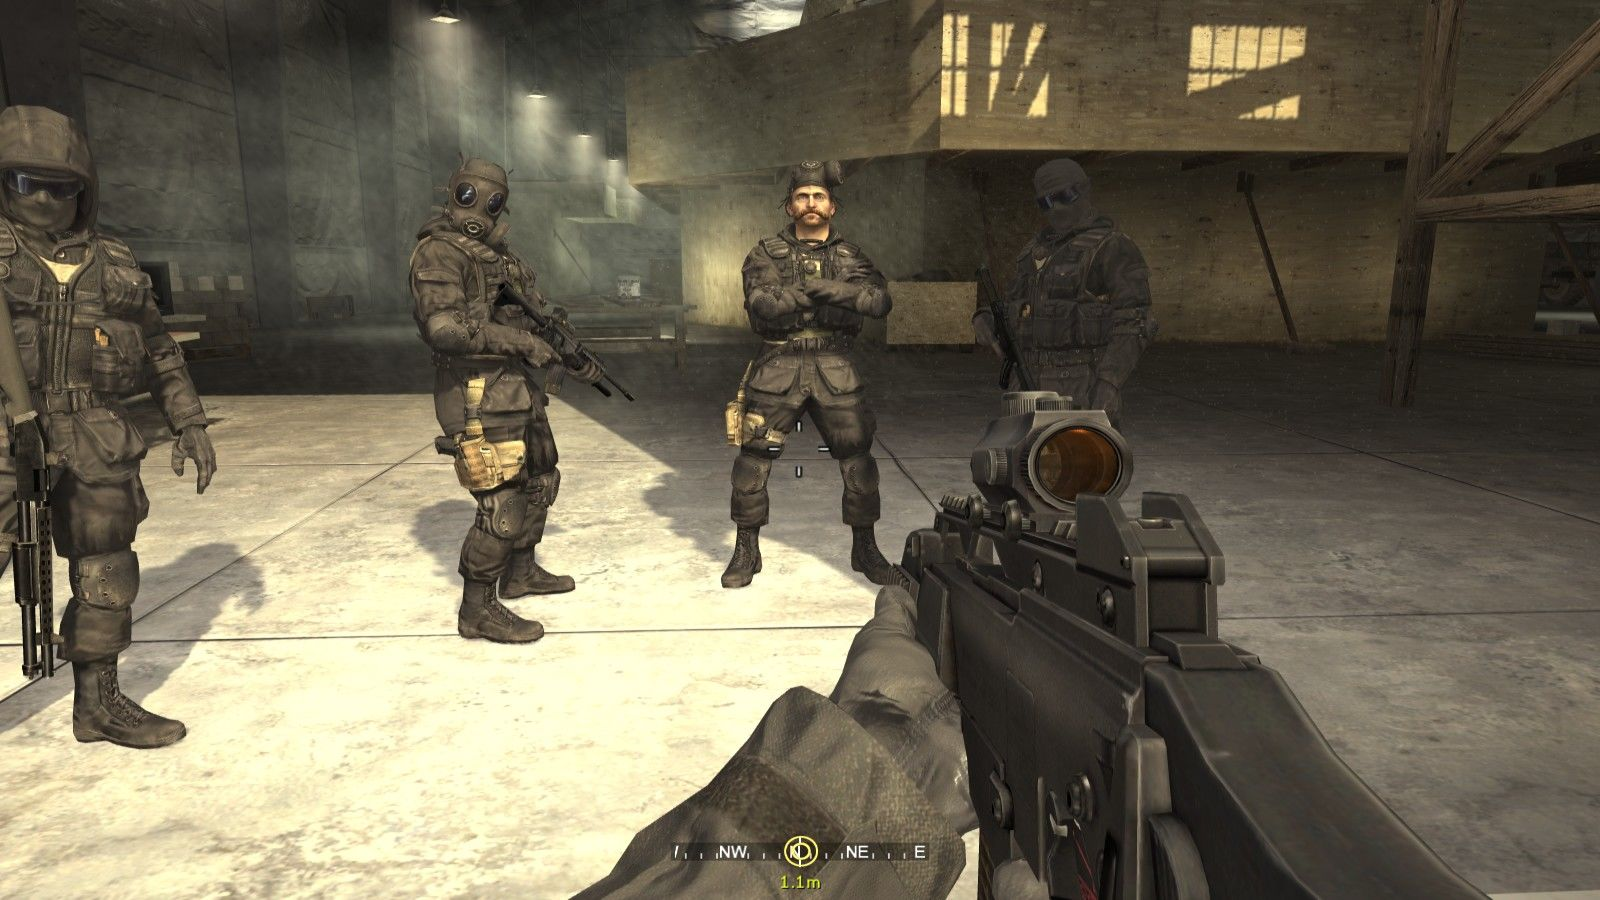 Call of Duty 4: Modern Warfare Windows As you meet your S.A.S. squad mates, capt. Price takes the piss off your name (which is 'Soap' by the way). Notice the funny stance of the second guy from the left :)